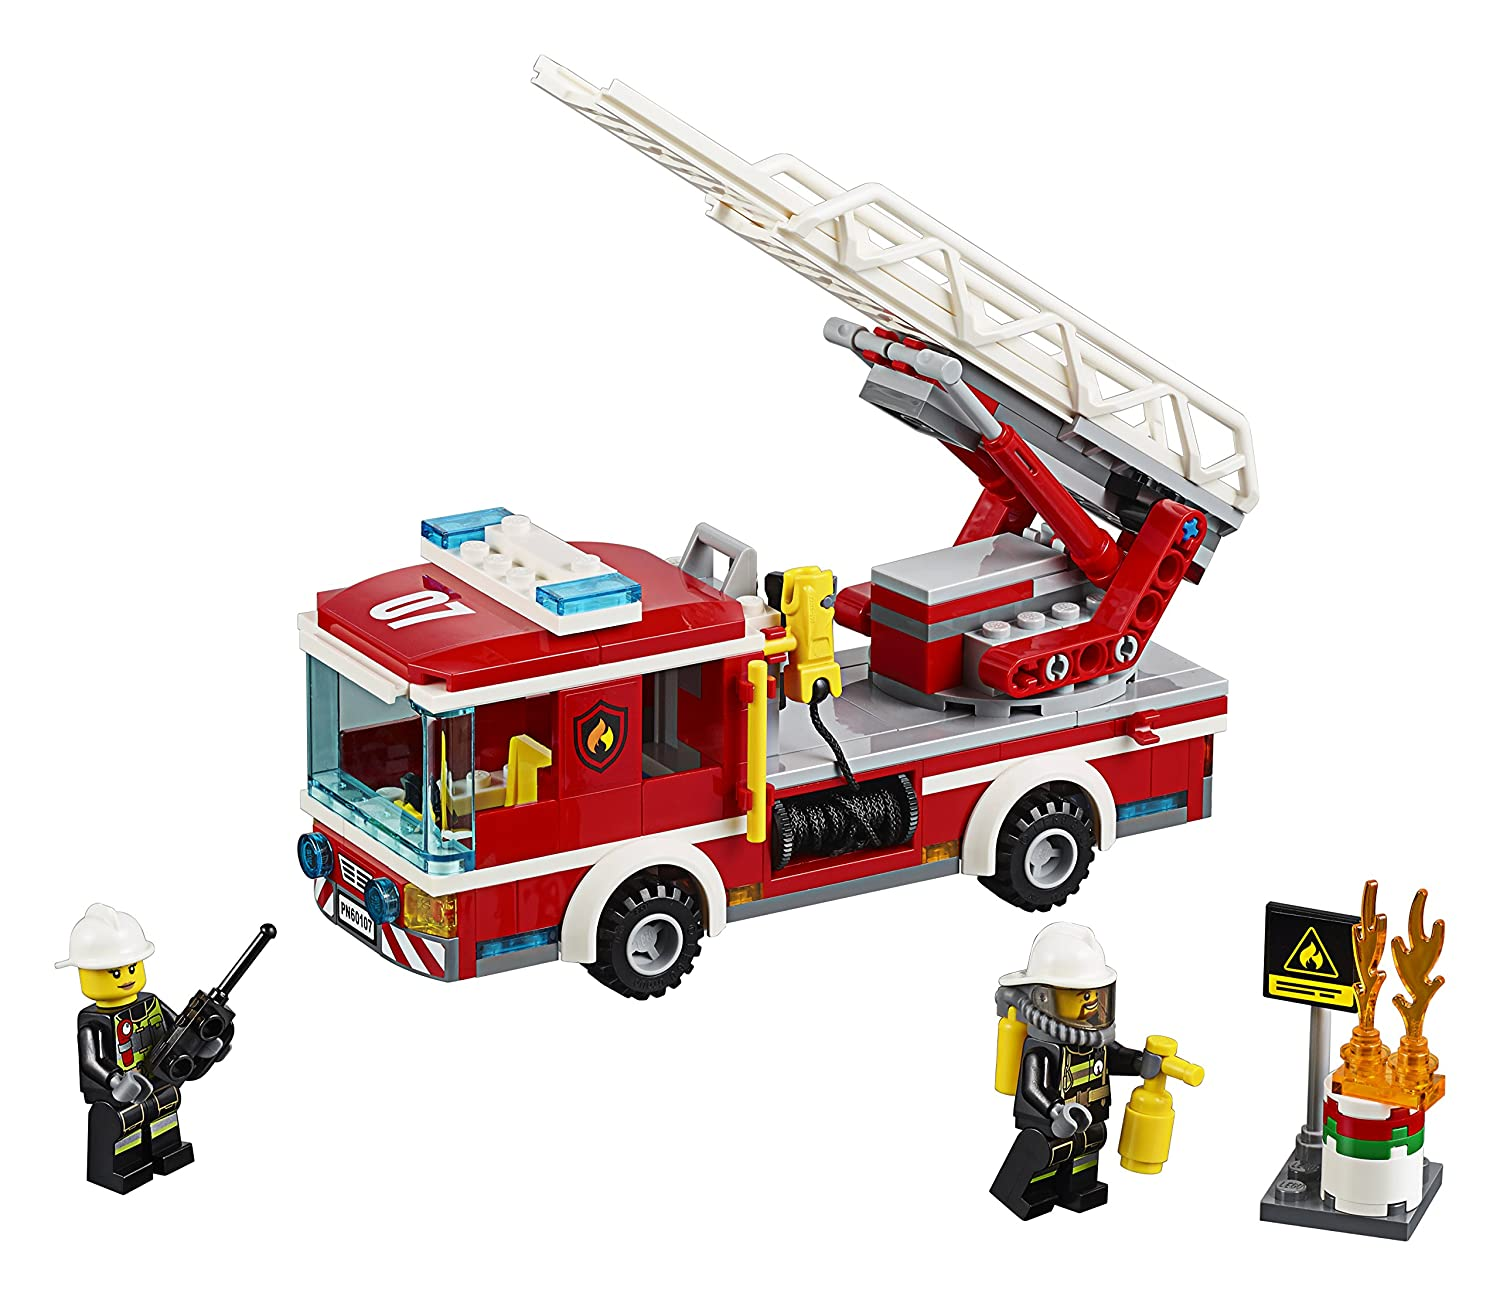 lego city fire ladder truck 60107 playset toy amazoncomau toys games - Camion Lego